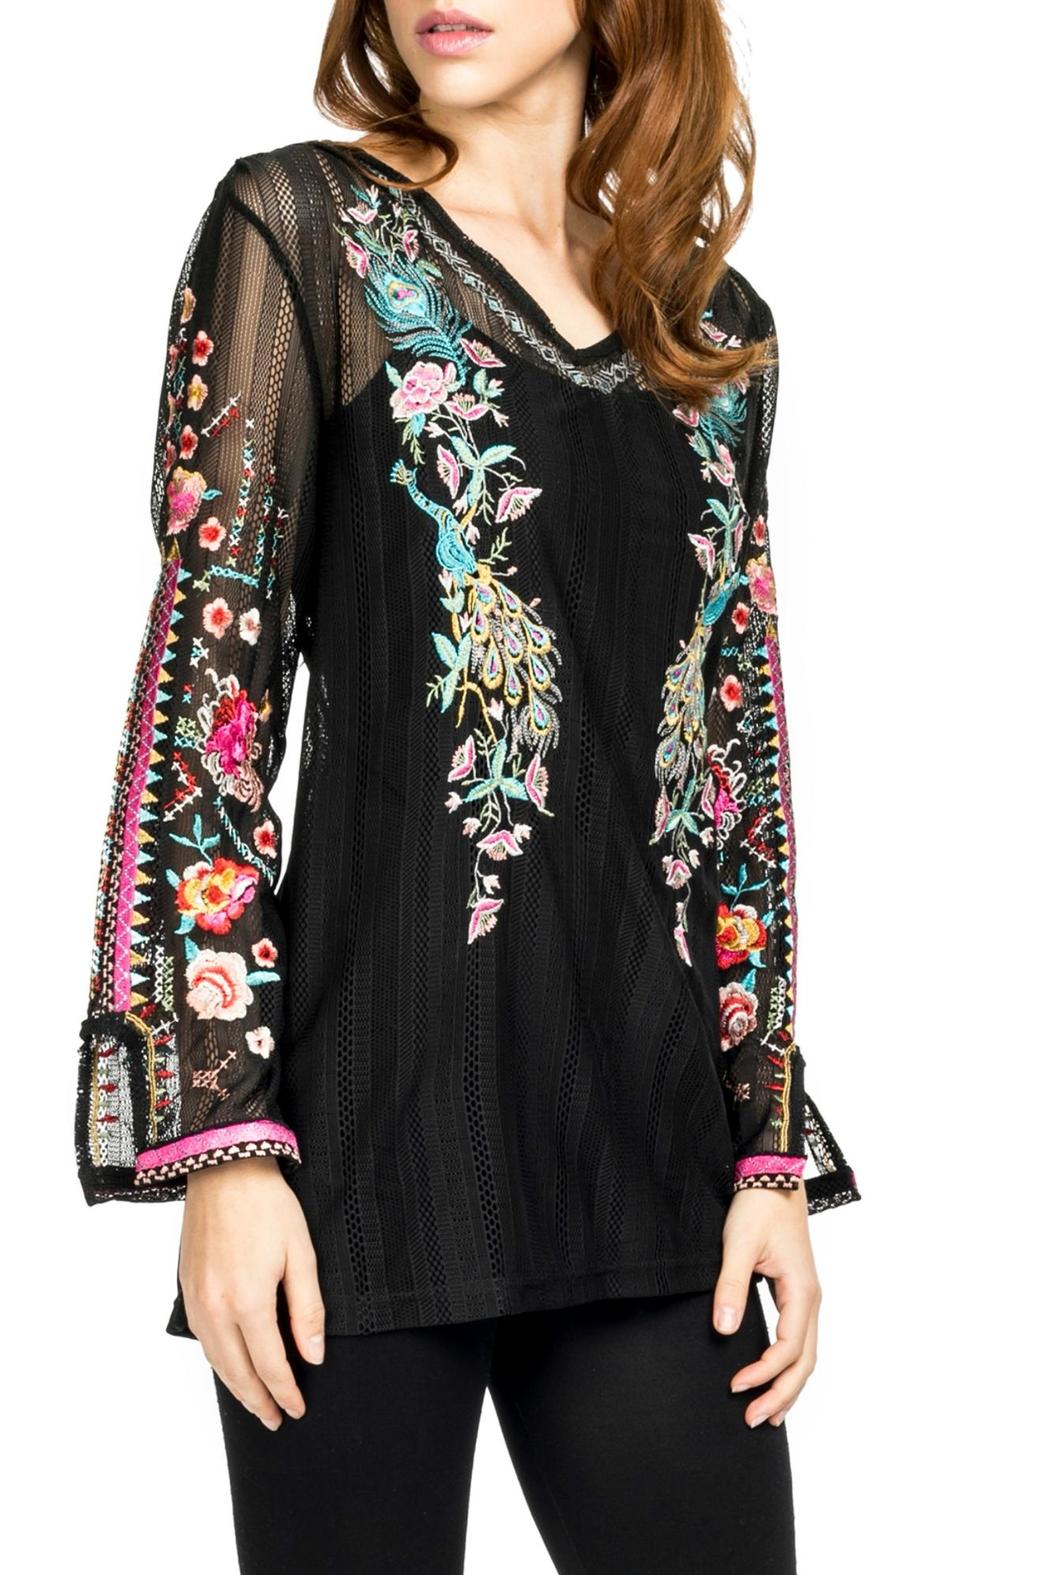 Adore Embroidered Motif Blouse - Main Image